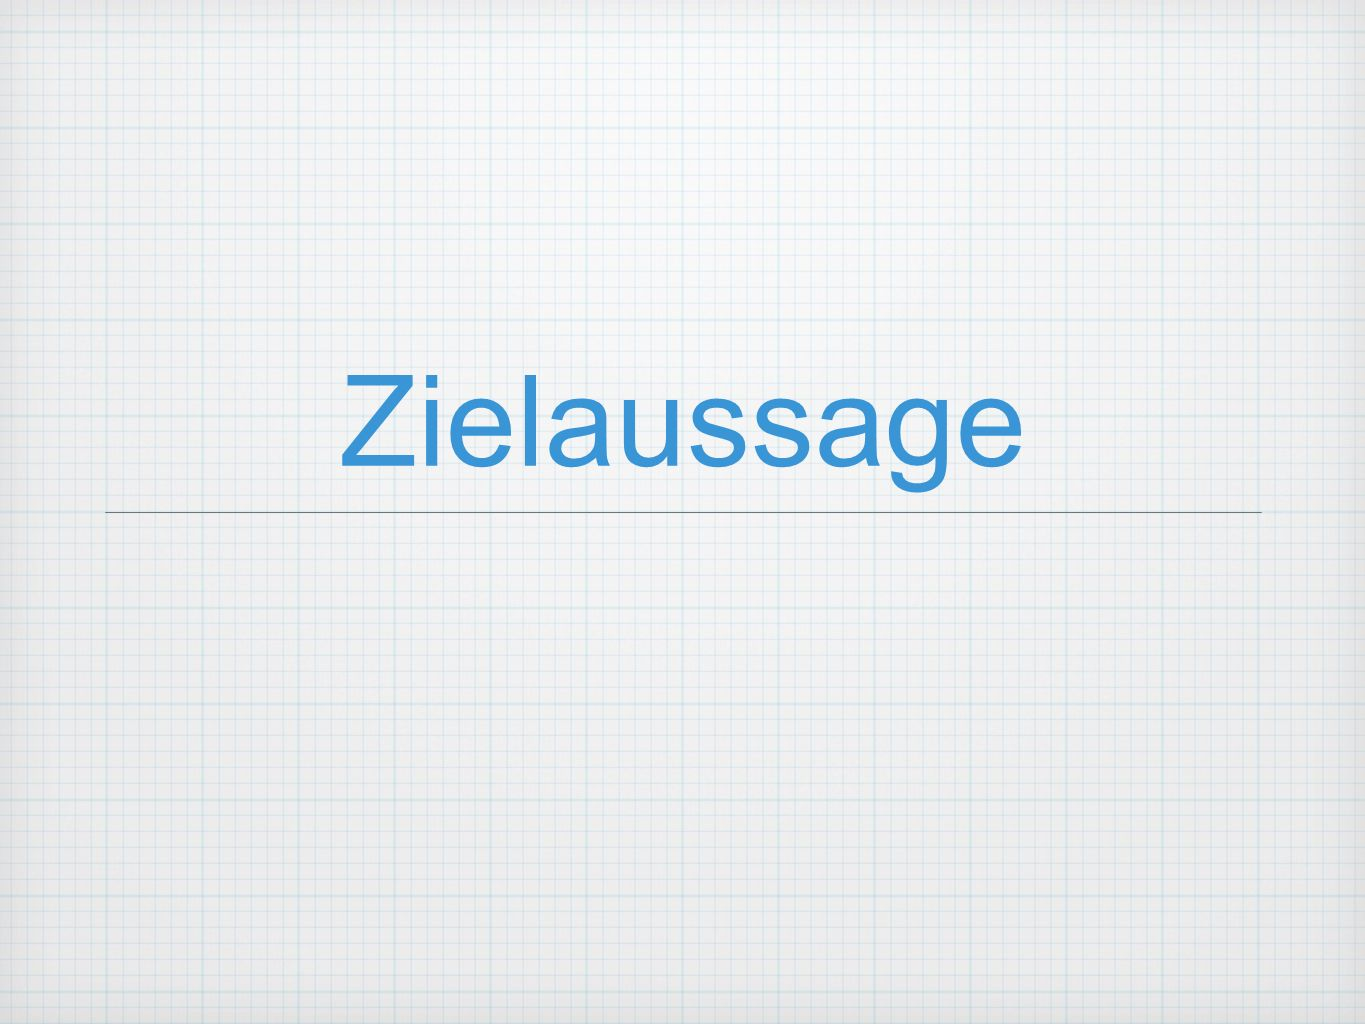 Zielaussage